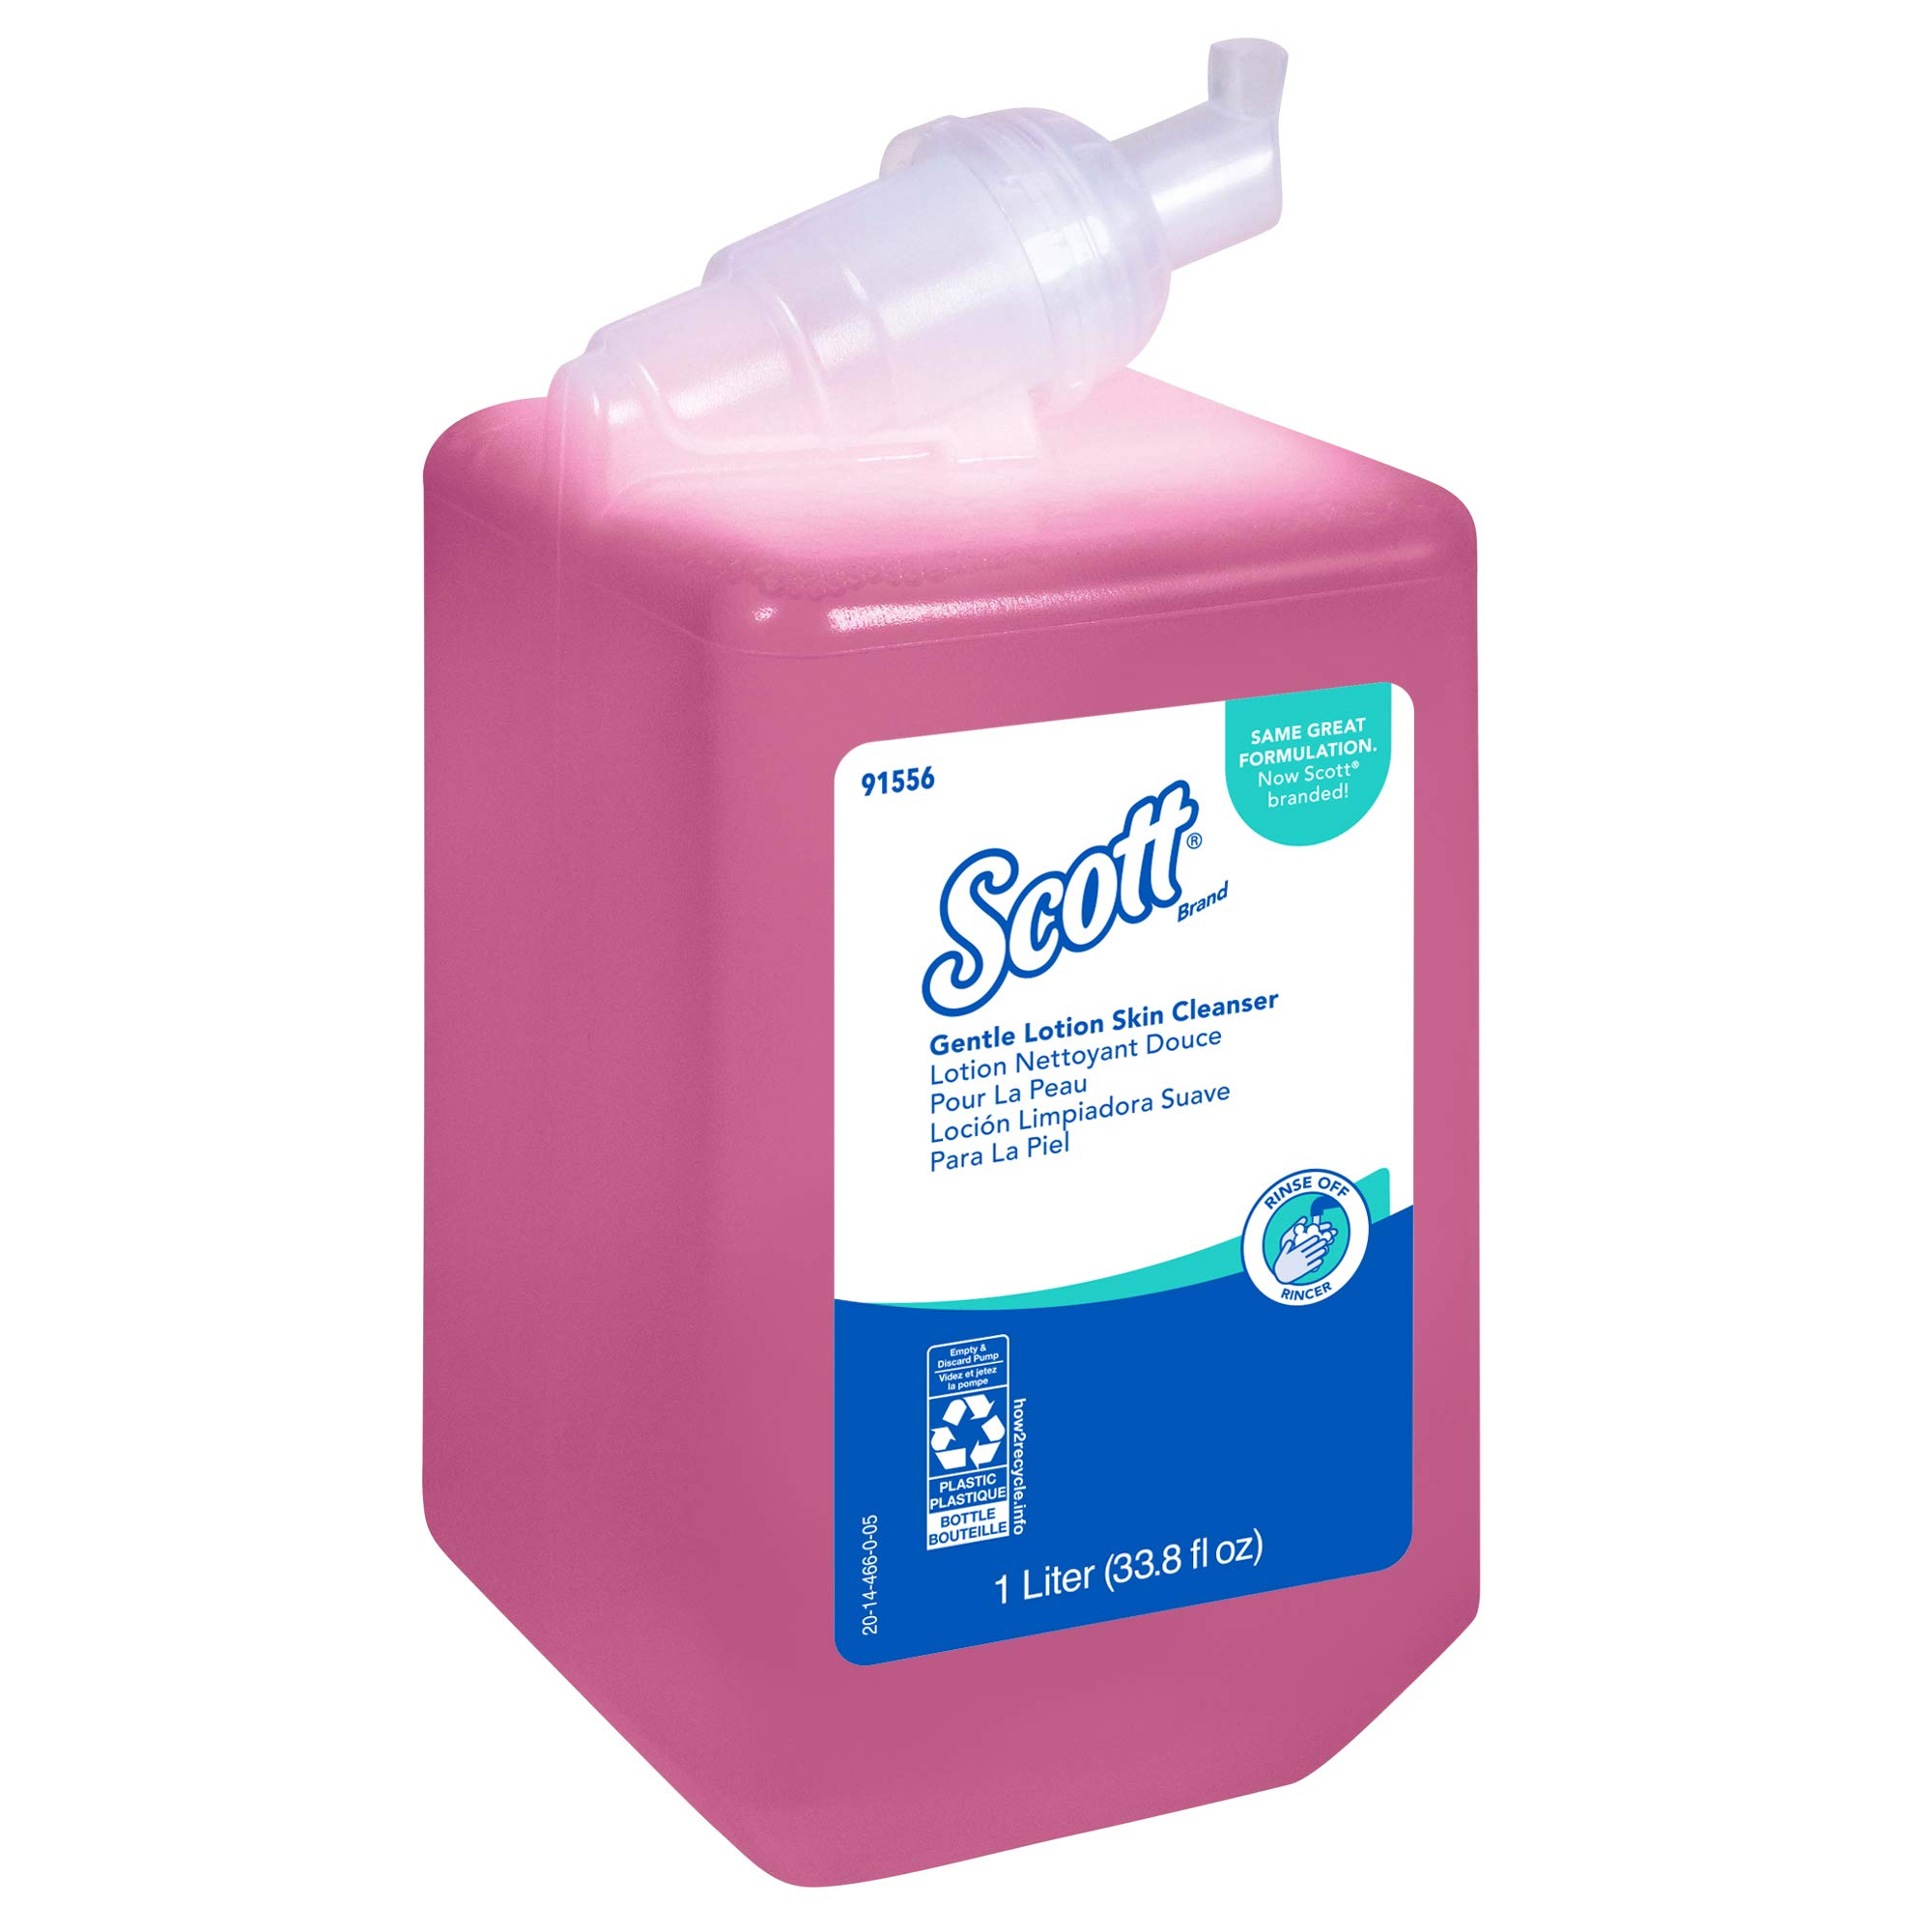 Scott Essential (formerly Kleenex) Gentle Lotion Skin Cleanser (91556), Floral, Pink, 1.0 L, 6 Packages/Case - Same Kleenex quality, now Scott branded